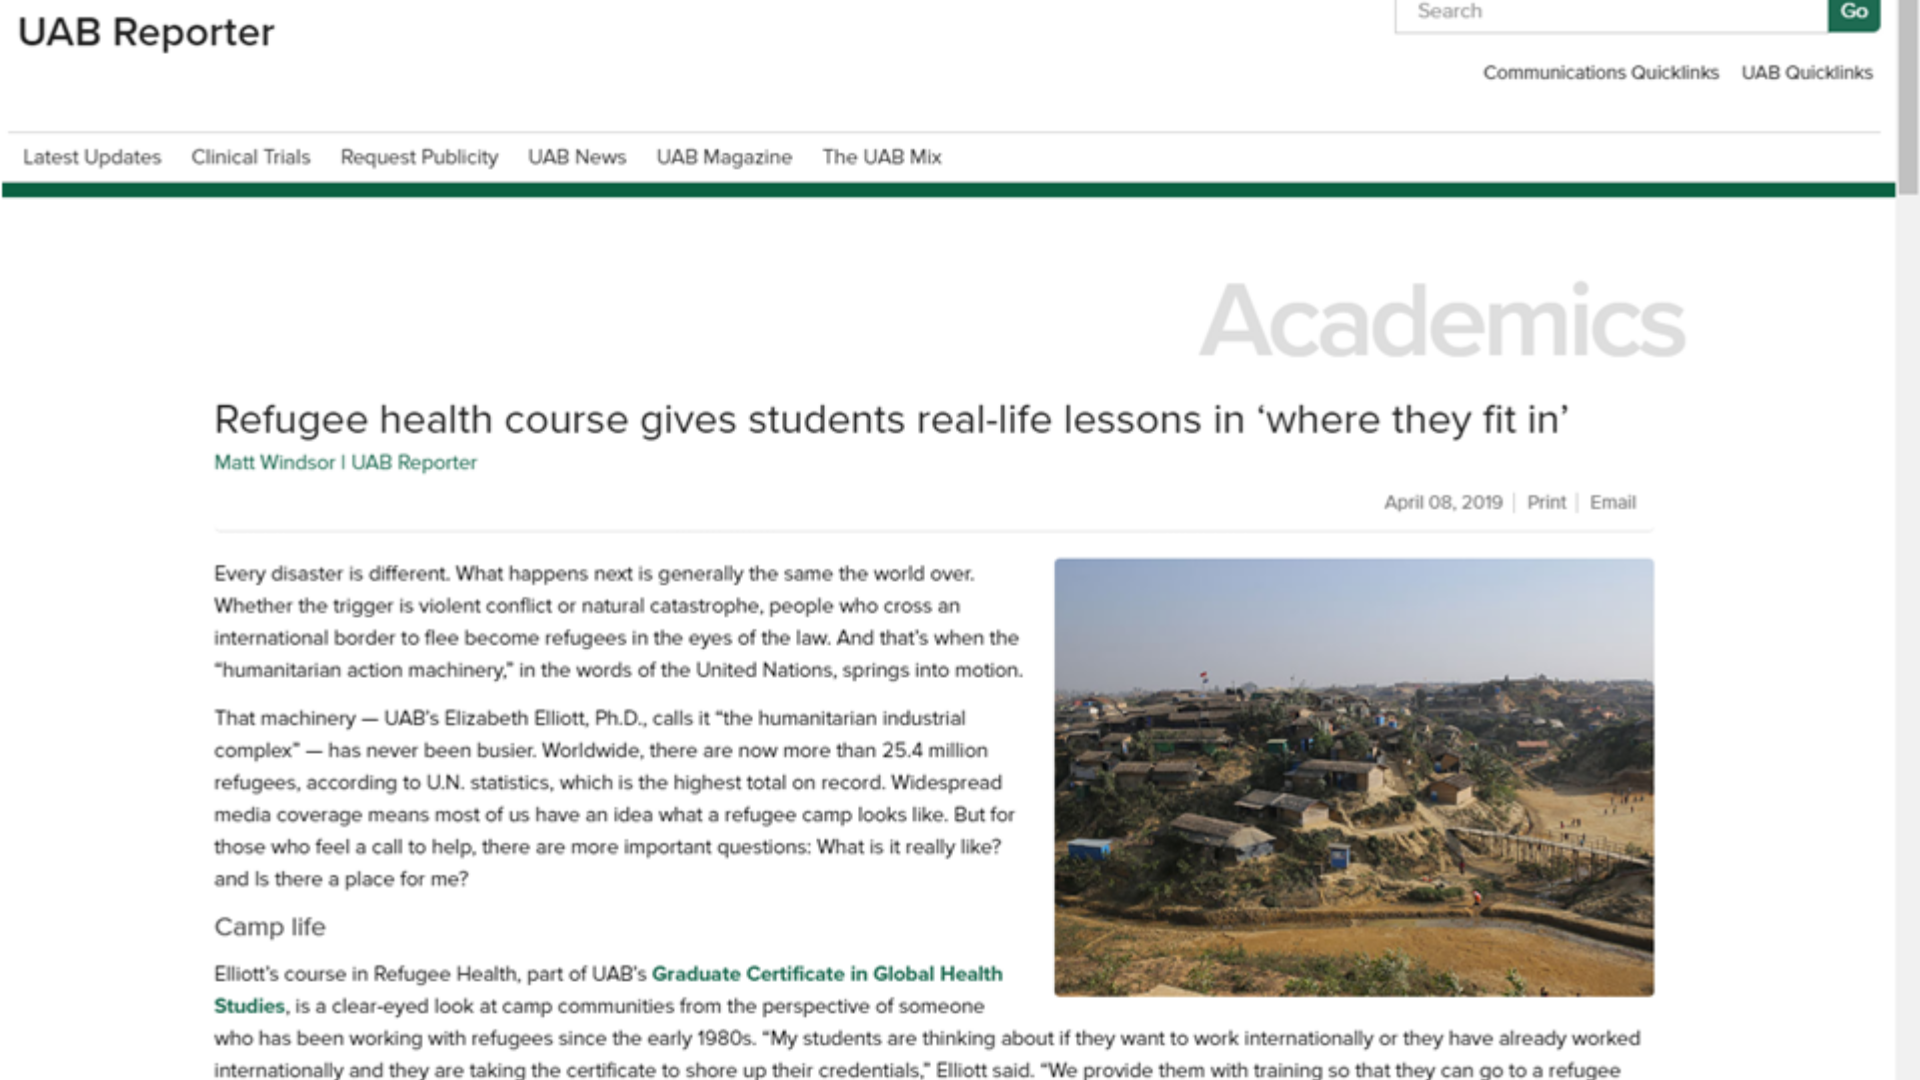 Refugee Health GHS Course Featured in UAB Reporter